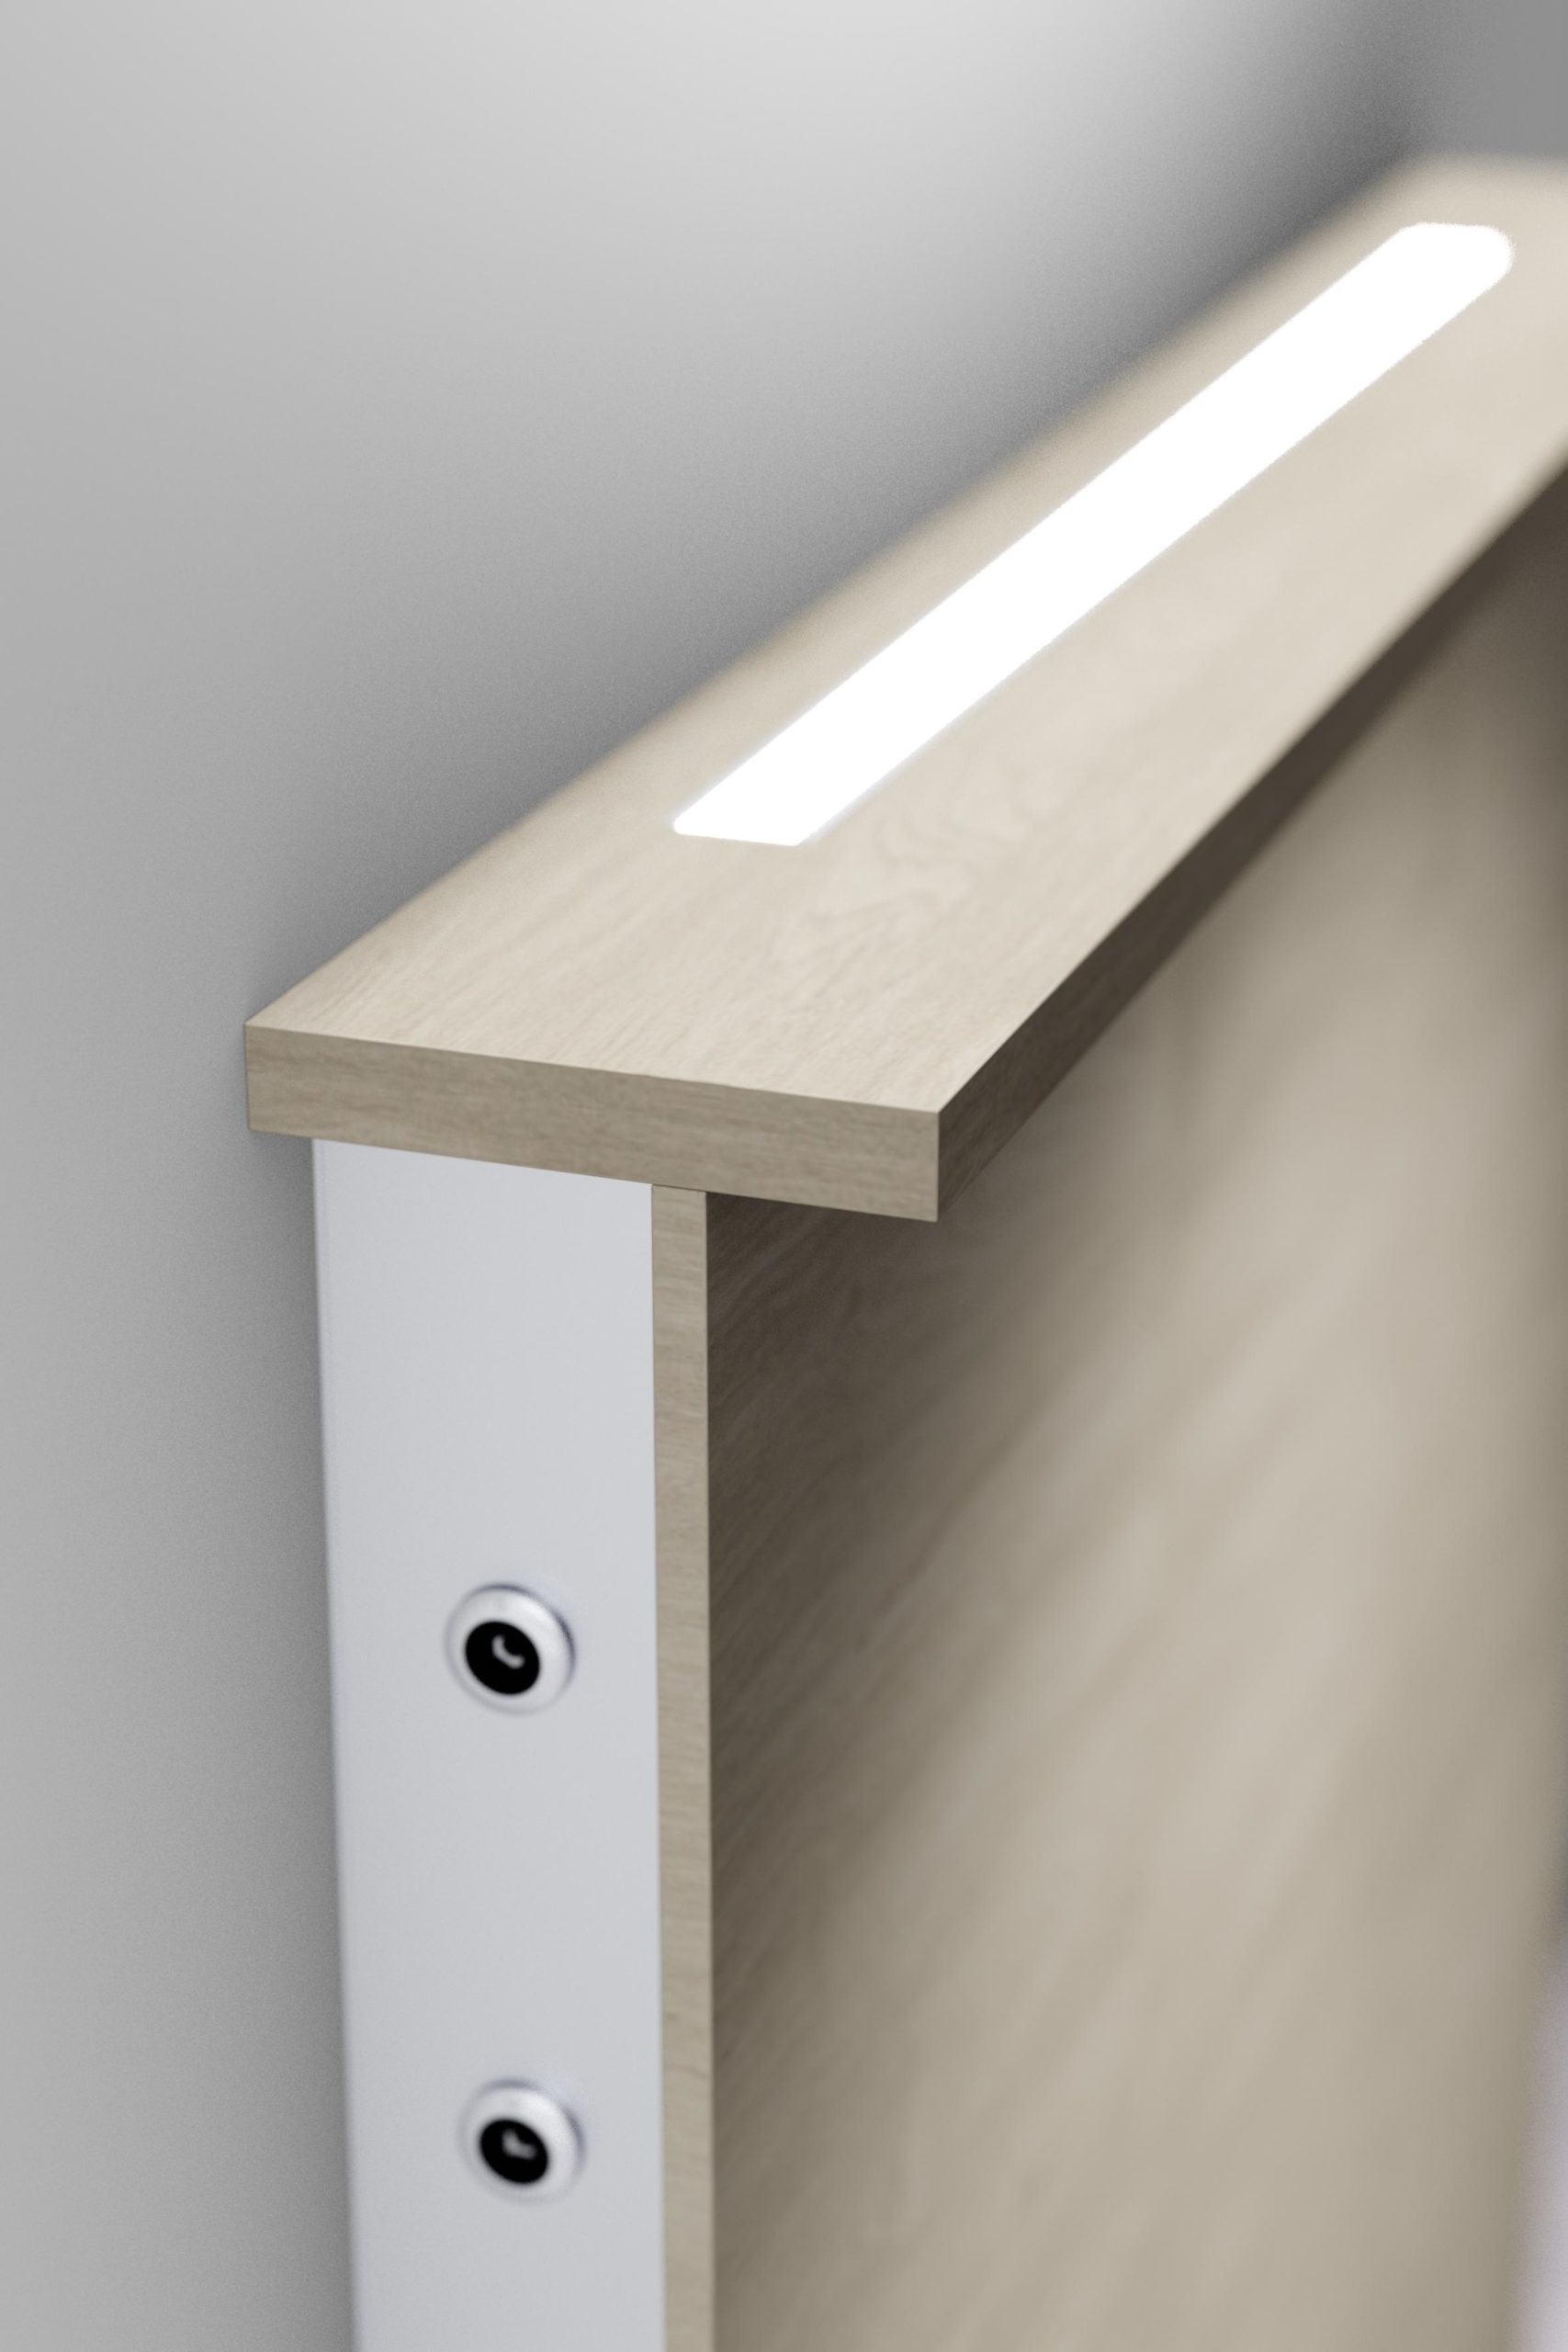 Medical Wall Supply Unit Ligno Lighting Example